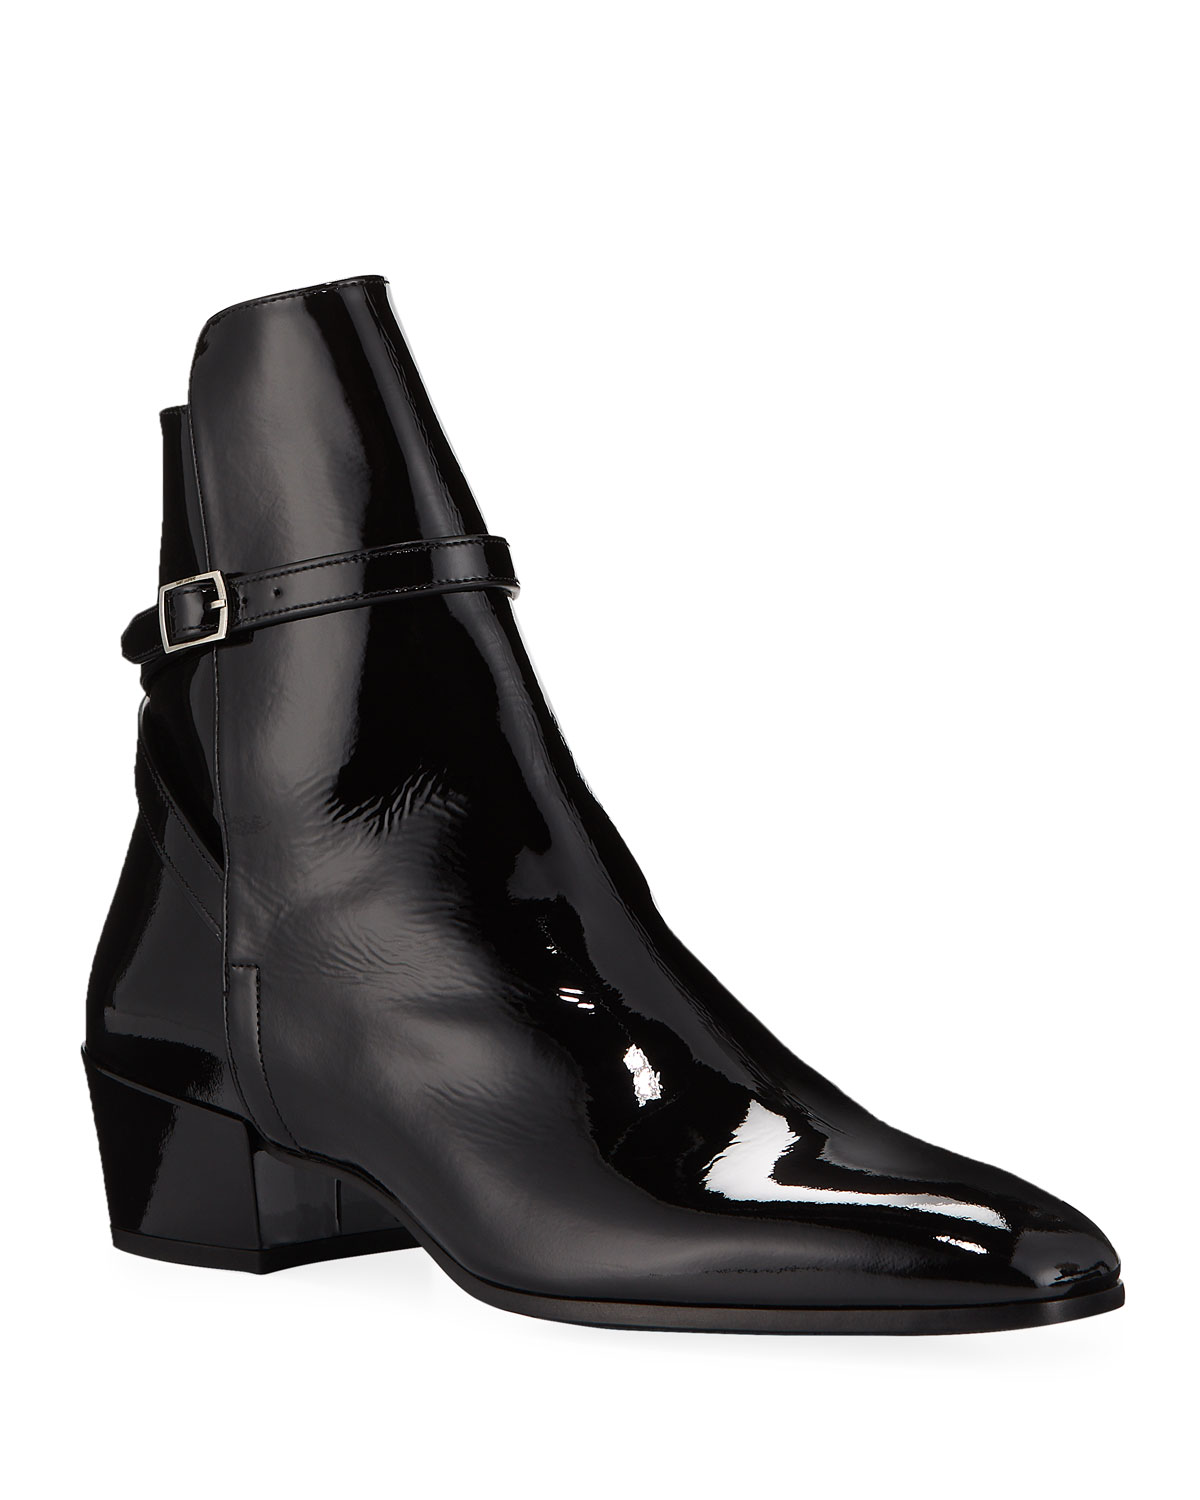 Men's Clementi 40 Buckle-Strap Patent Leather Boots